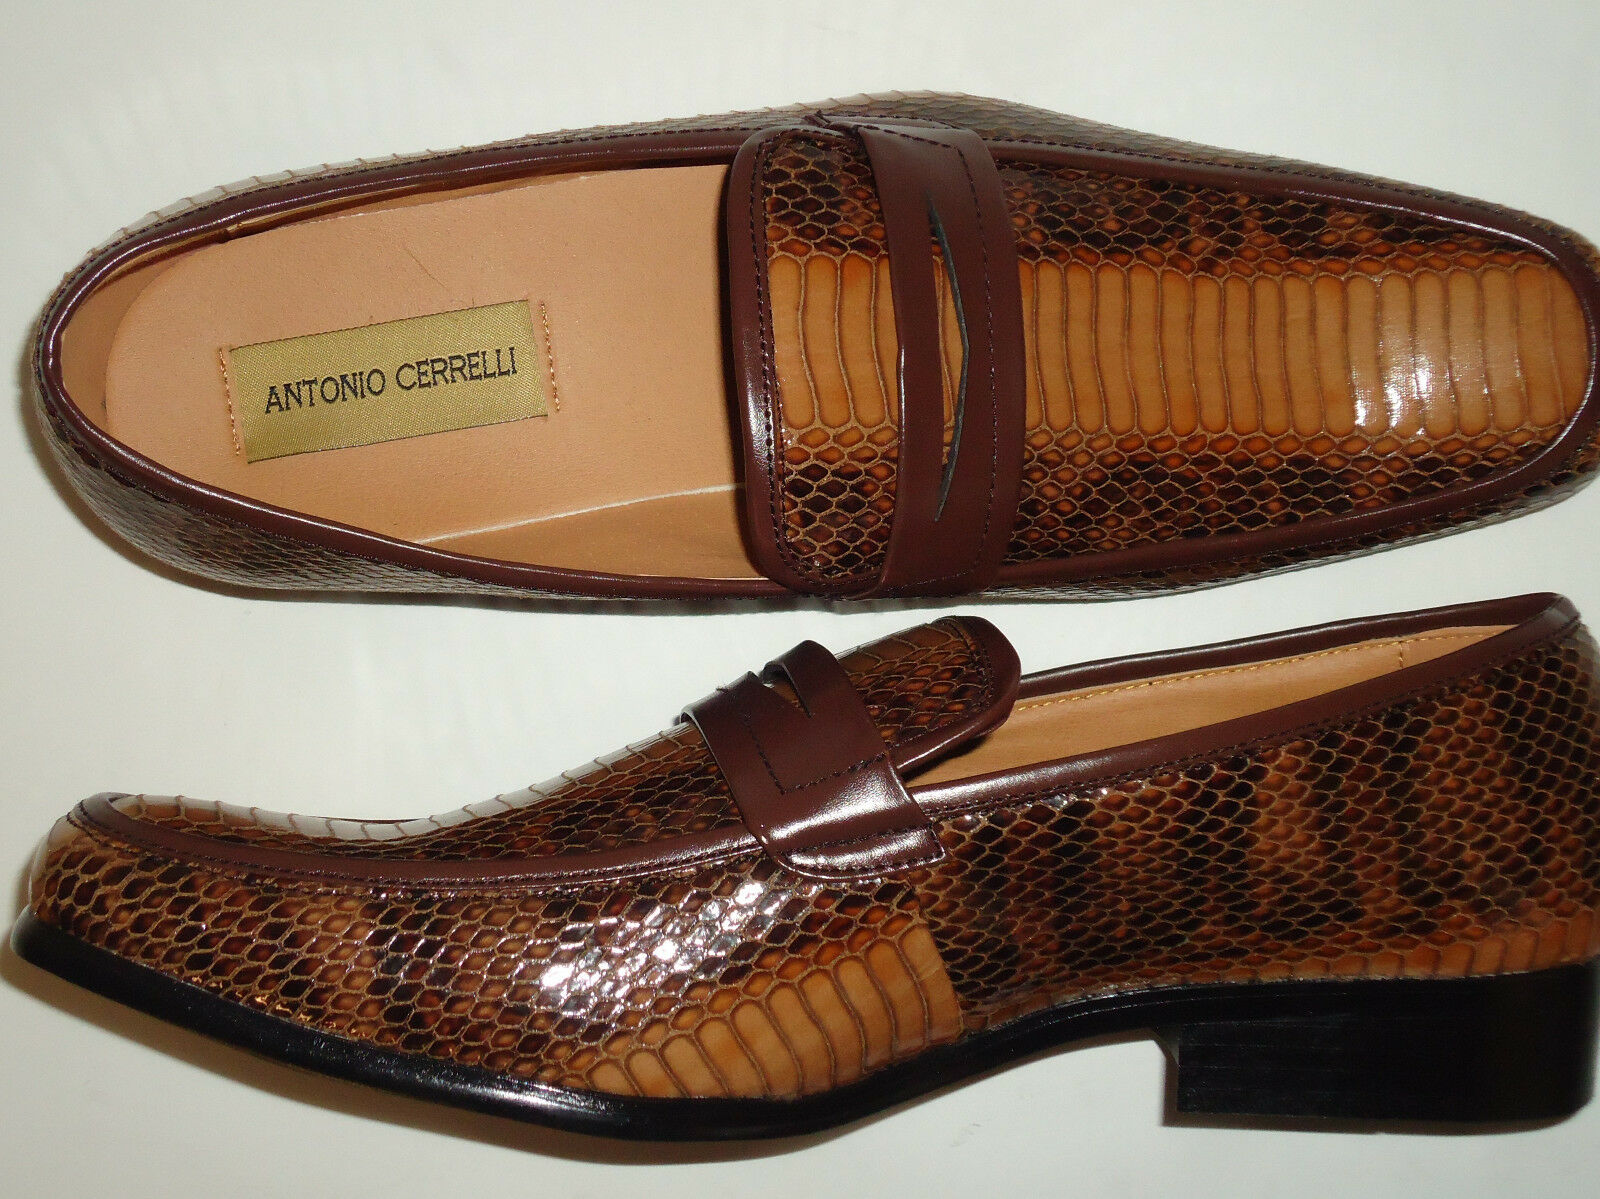 Antonio Cerrelli 6494 Mens Rich Browns Snake Look Dressy Loafers Slip On shoes